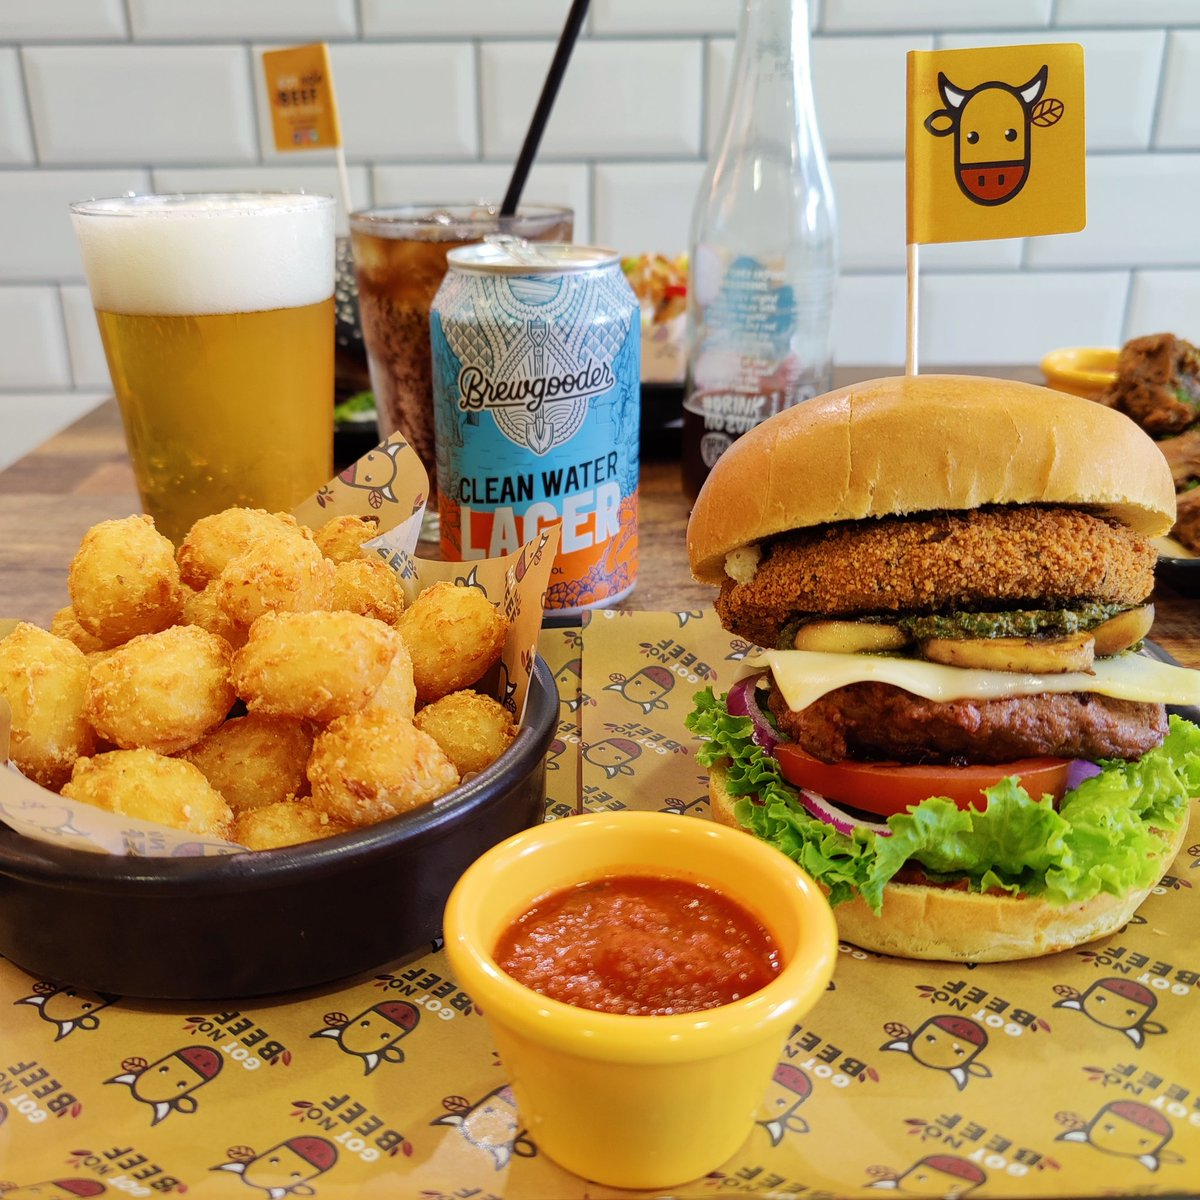 Our MVP burger with tots and a @BrewGoodr Clean Water lager make a great pairing 🍔🍺  We are open until 6pm and, as usual, we have set tables aside for walk-ins so we can welcome as many of you as possible! 💚 https://t.co/c3i7gkHGLr